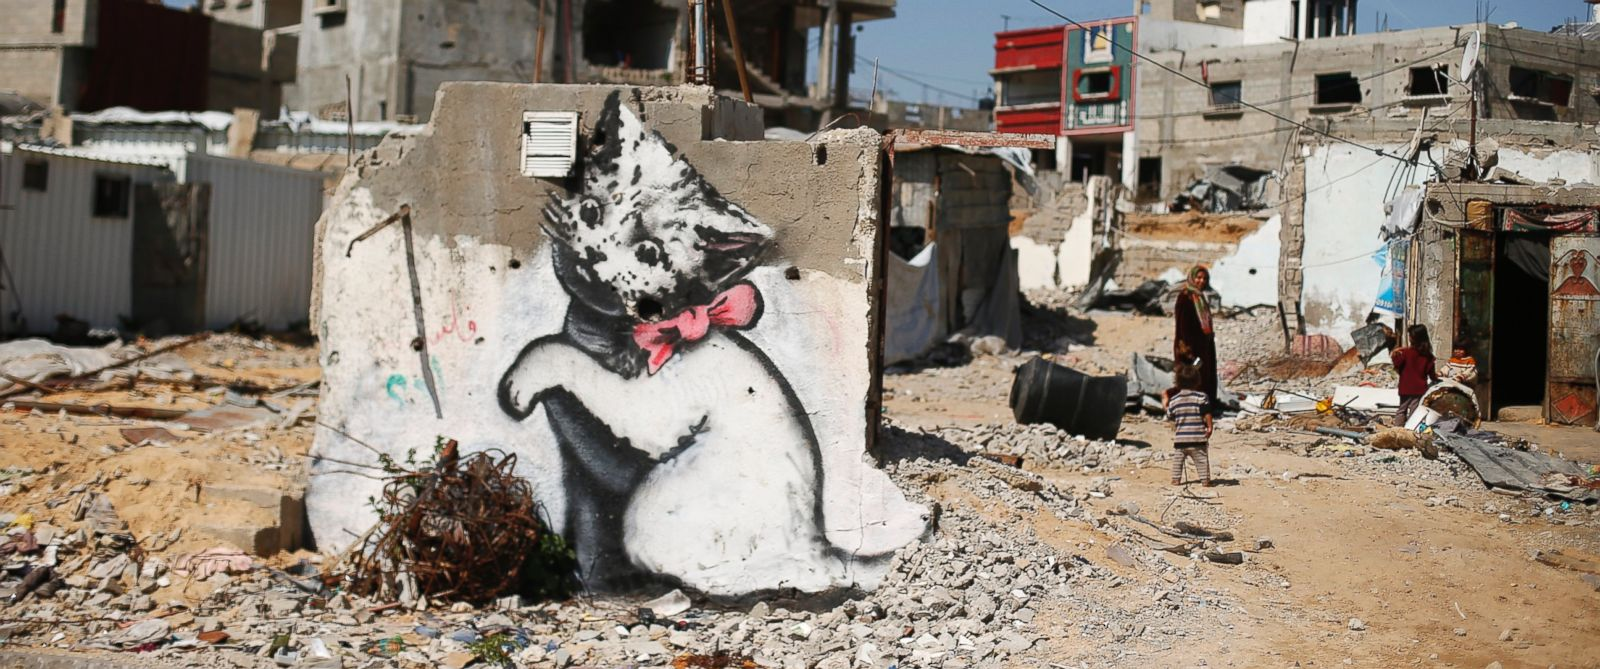 PHOTO: A mural of a playful-looking kitten, presumably painted by British street artist Banksy, is seen on the remains of a house in Beit Hanoun town in the northern Gaza Strip, Feb. 26, 2015.